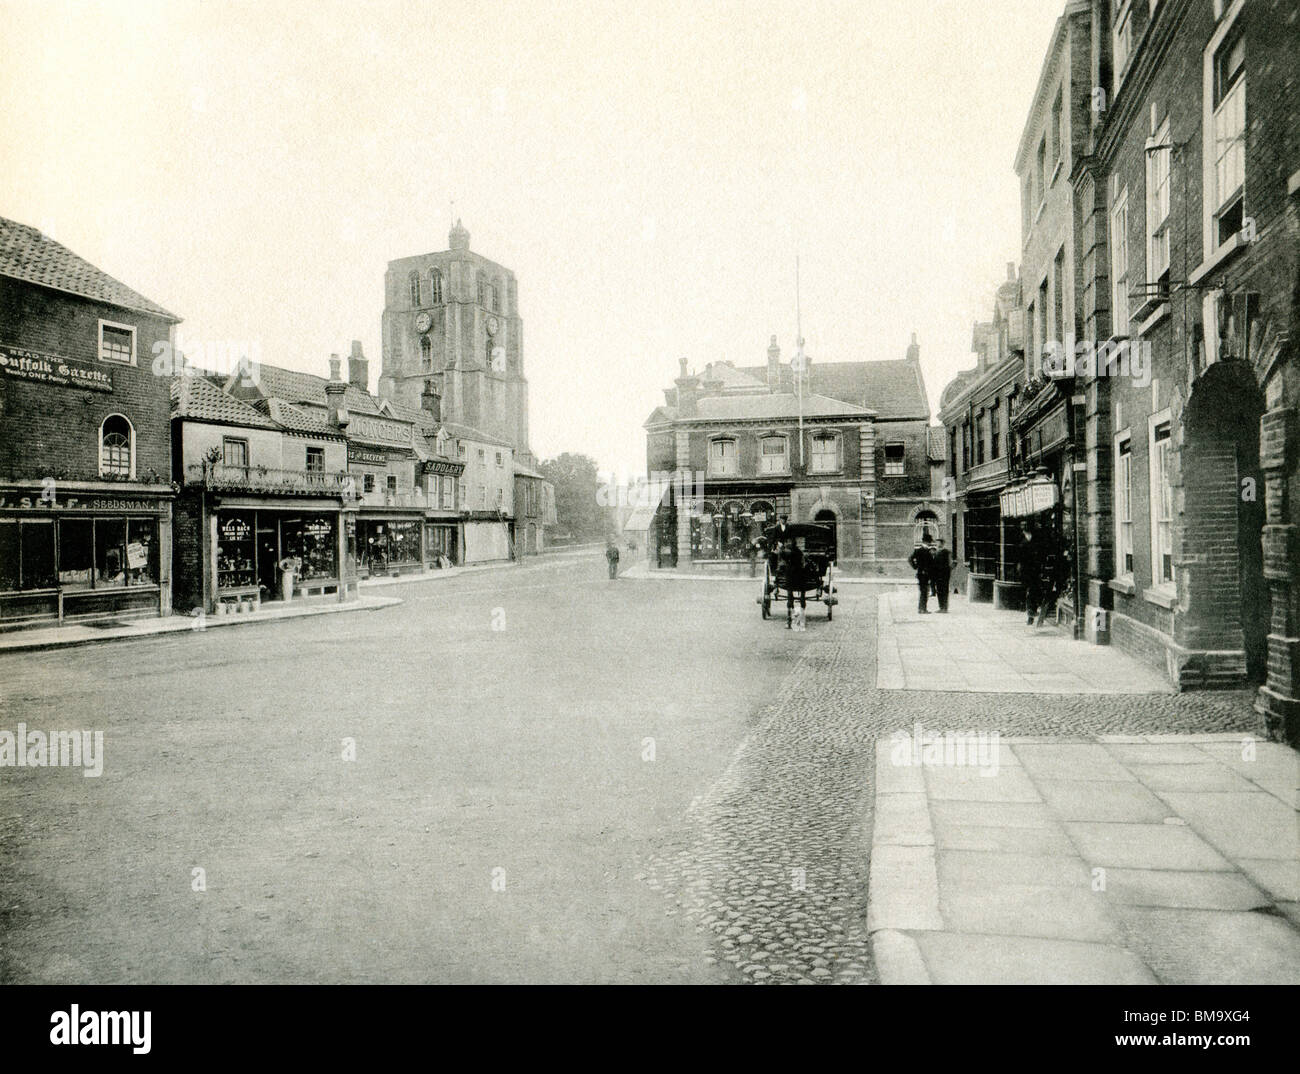 UK England, Historic Suffolk, Victorian Beccles town centre market square around 1900 Stock Photo